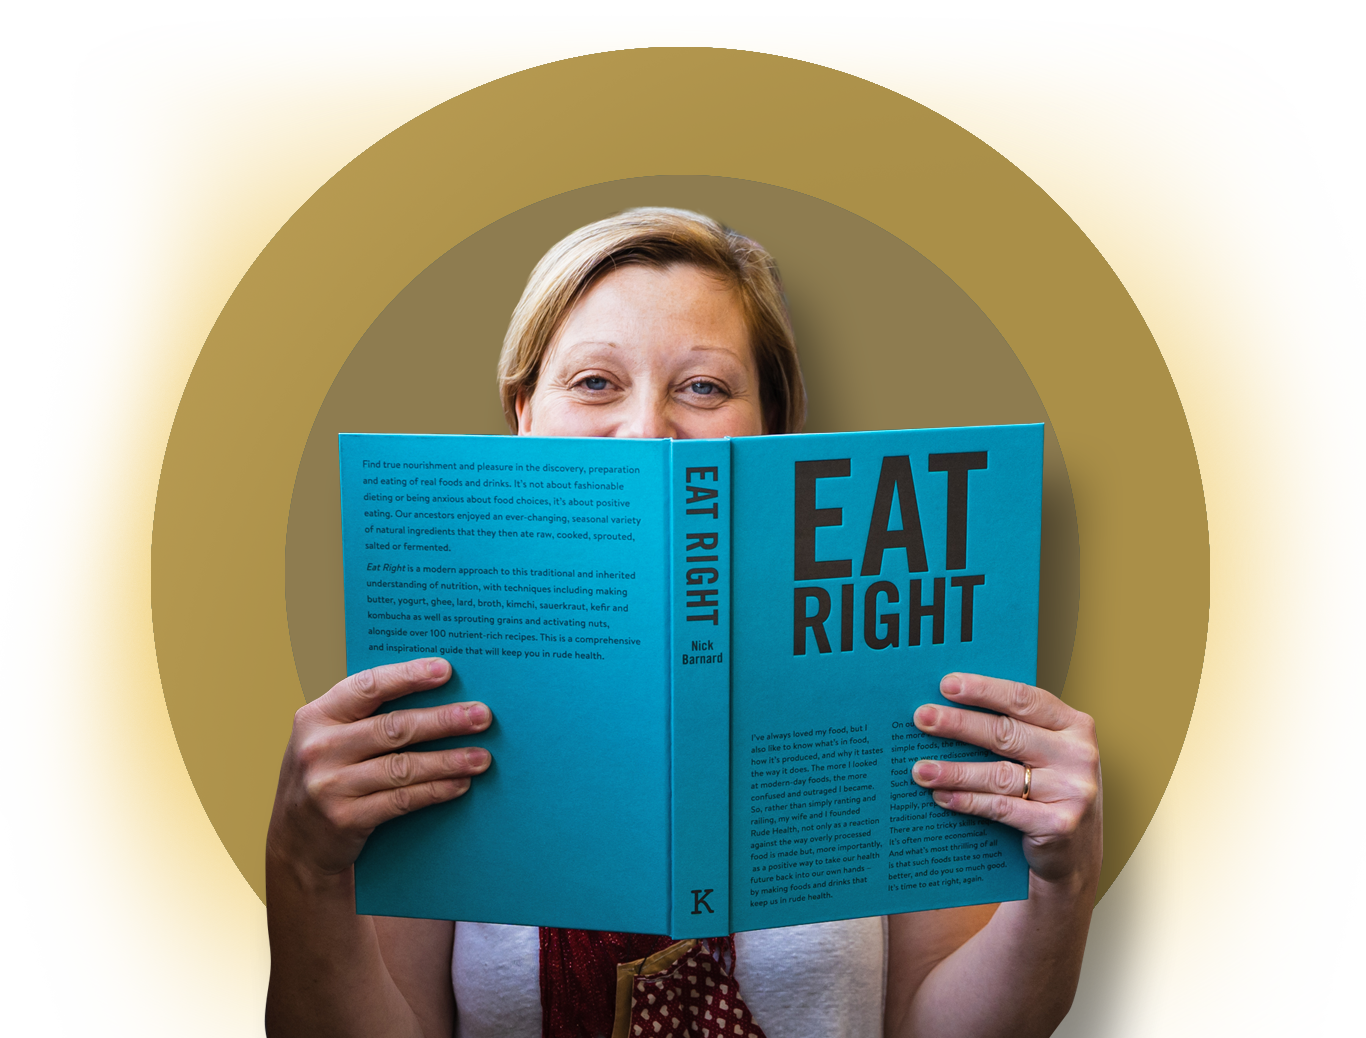 Photo of Claire reading a food book